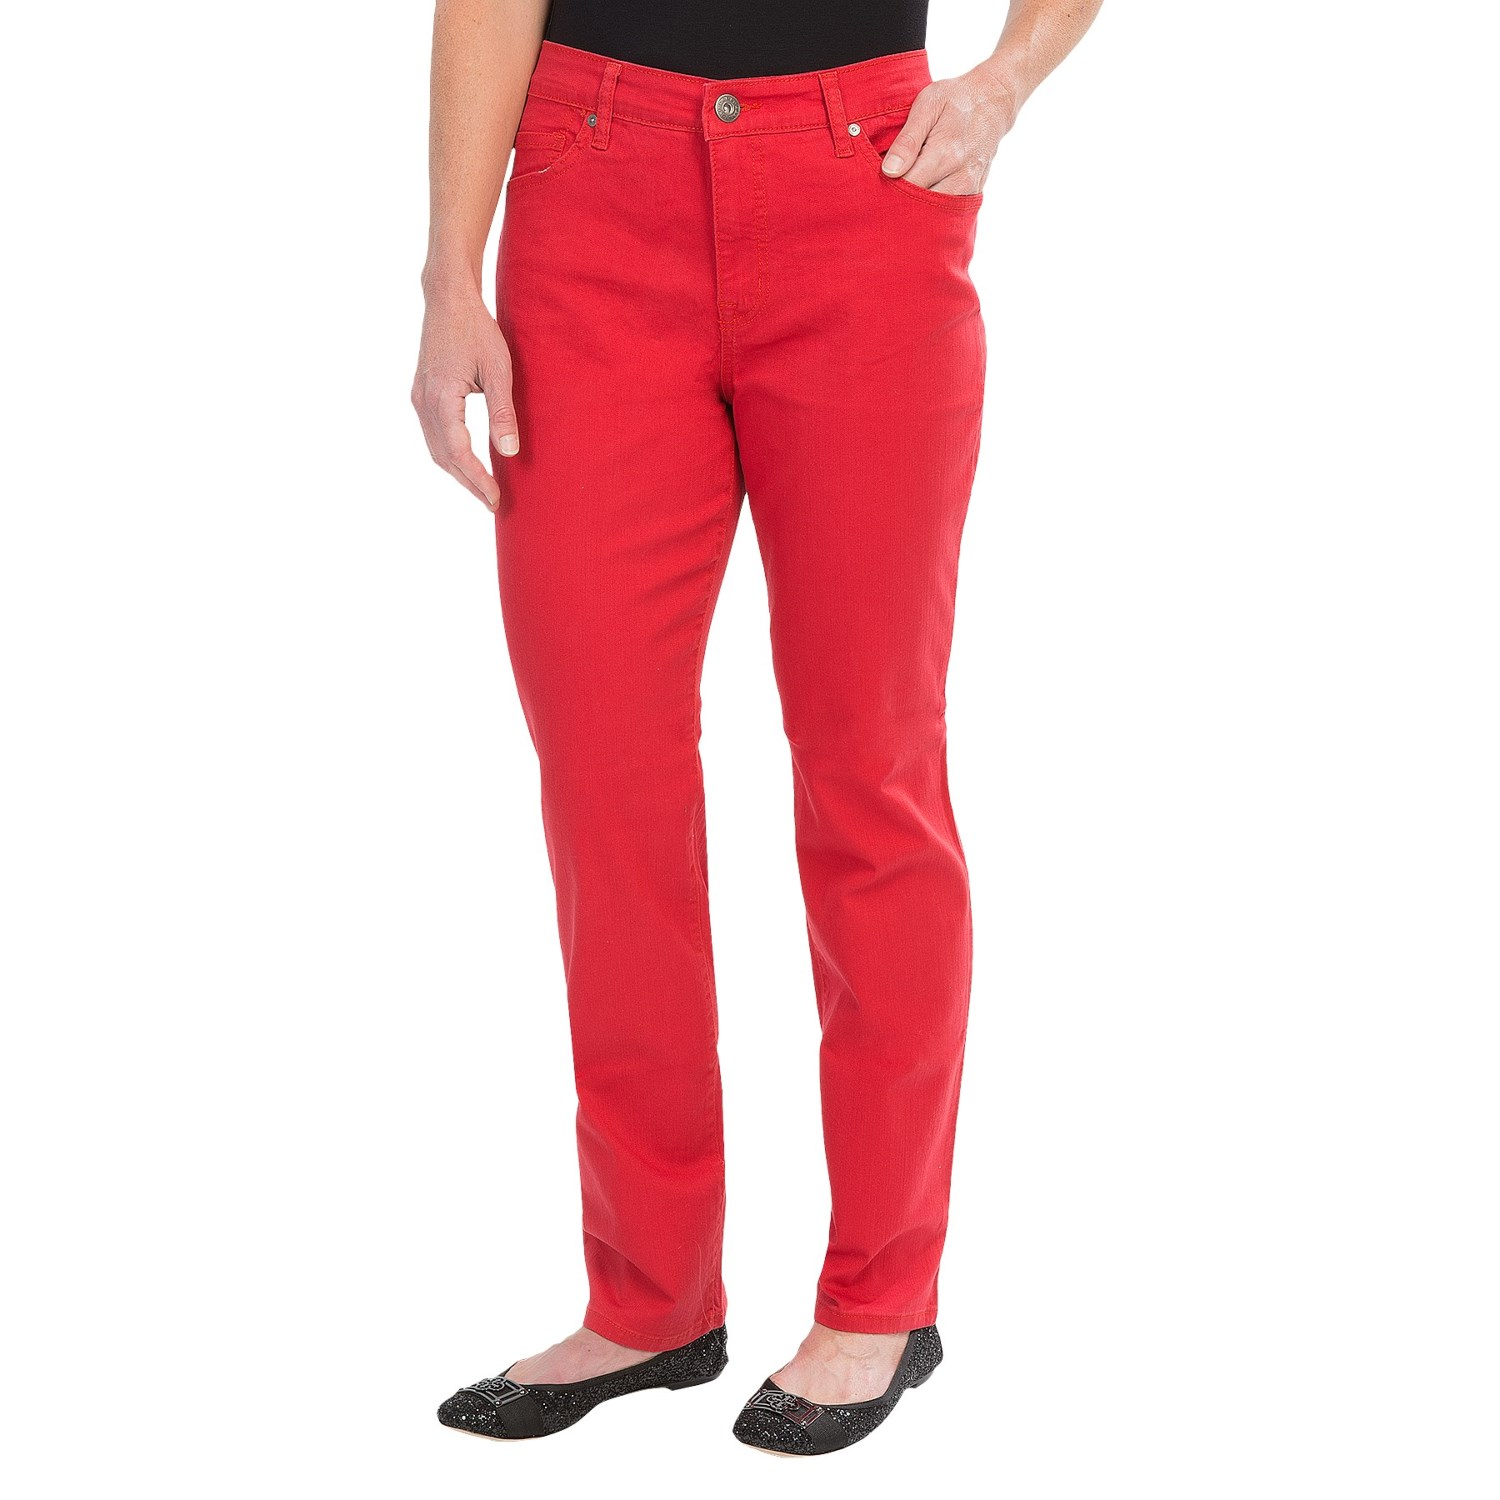 Buy New Womens Colored Jeans at Macy's. Shop Online for the Latest Designer Colored Jeans for Women at report2day.ml FREE SHIPPING AVAILABLE!